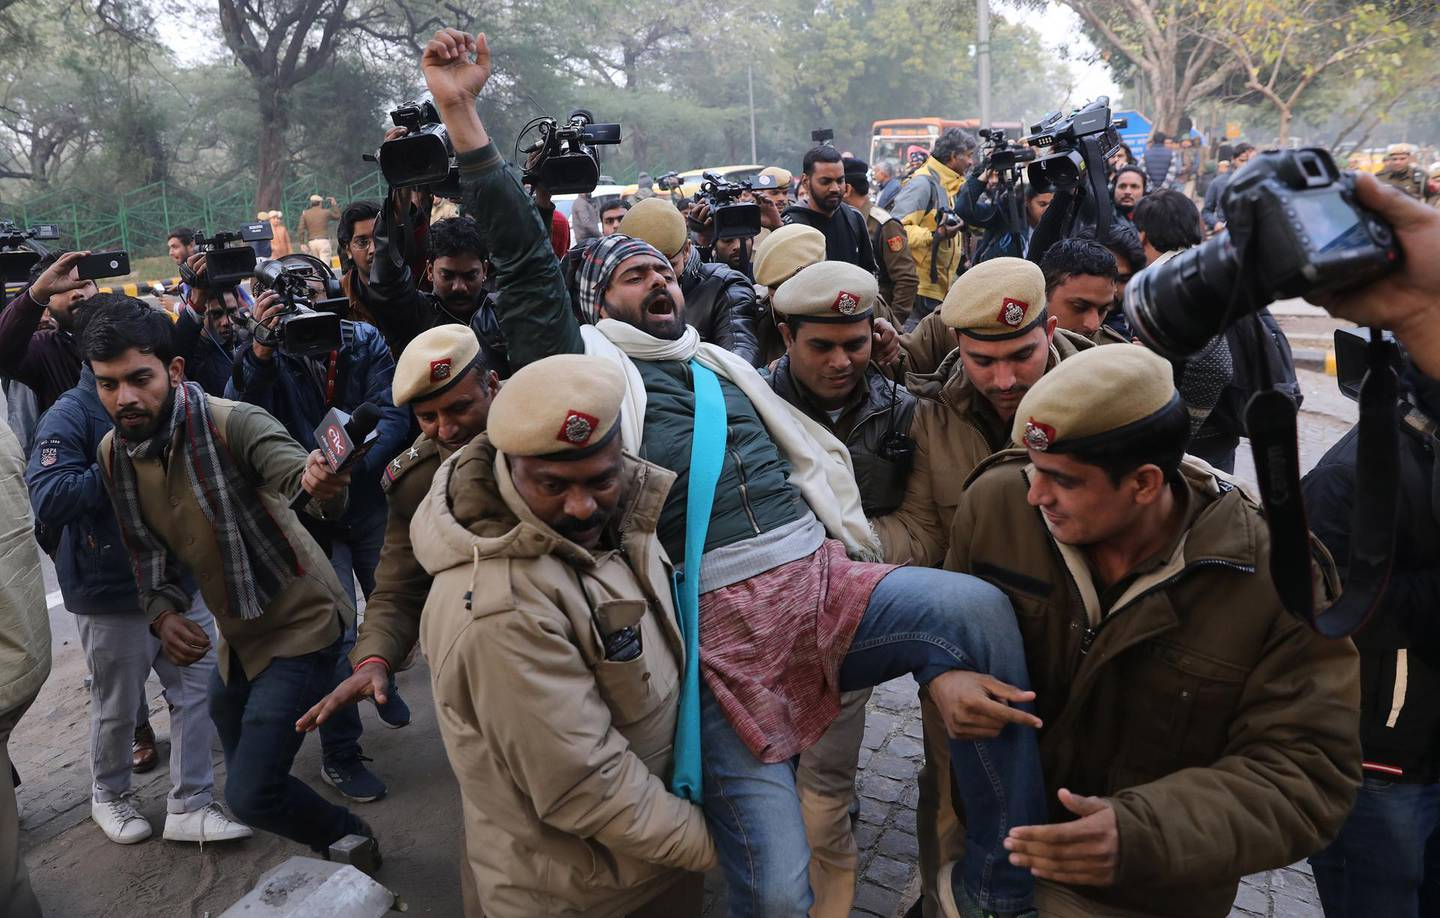 epa08091737 Indian Security personnel detain Indian student activists during a protest against alleged police brutality on protesters in Uttar Pradesh state, against the Citizenship Amendment Act (CAA) and the National Register of Citizens (NRC), outside the Uttar Pradesh Bhawan in New Delhi, India, 27 December 2019. The bill will give Indian citizenship rights to refugees from Hindu, Jain, Buddhist, Sikhs, Parsi or Christian communities coming from Afghanistan, Bangladesh and Pakistan.  EPA/RAJAT GUPTA